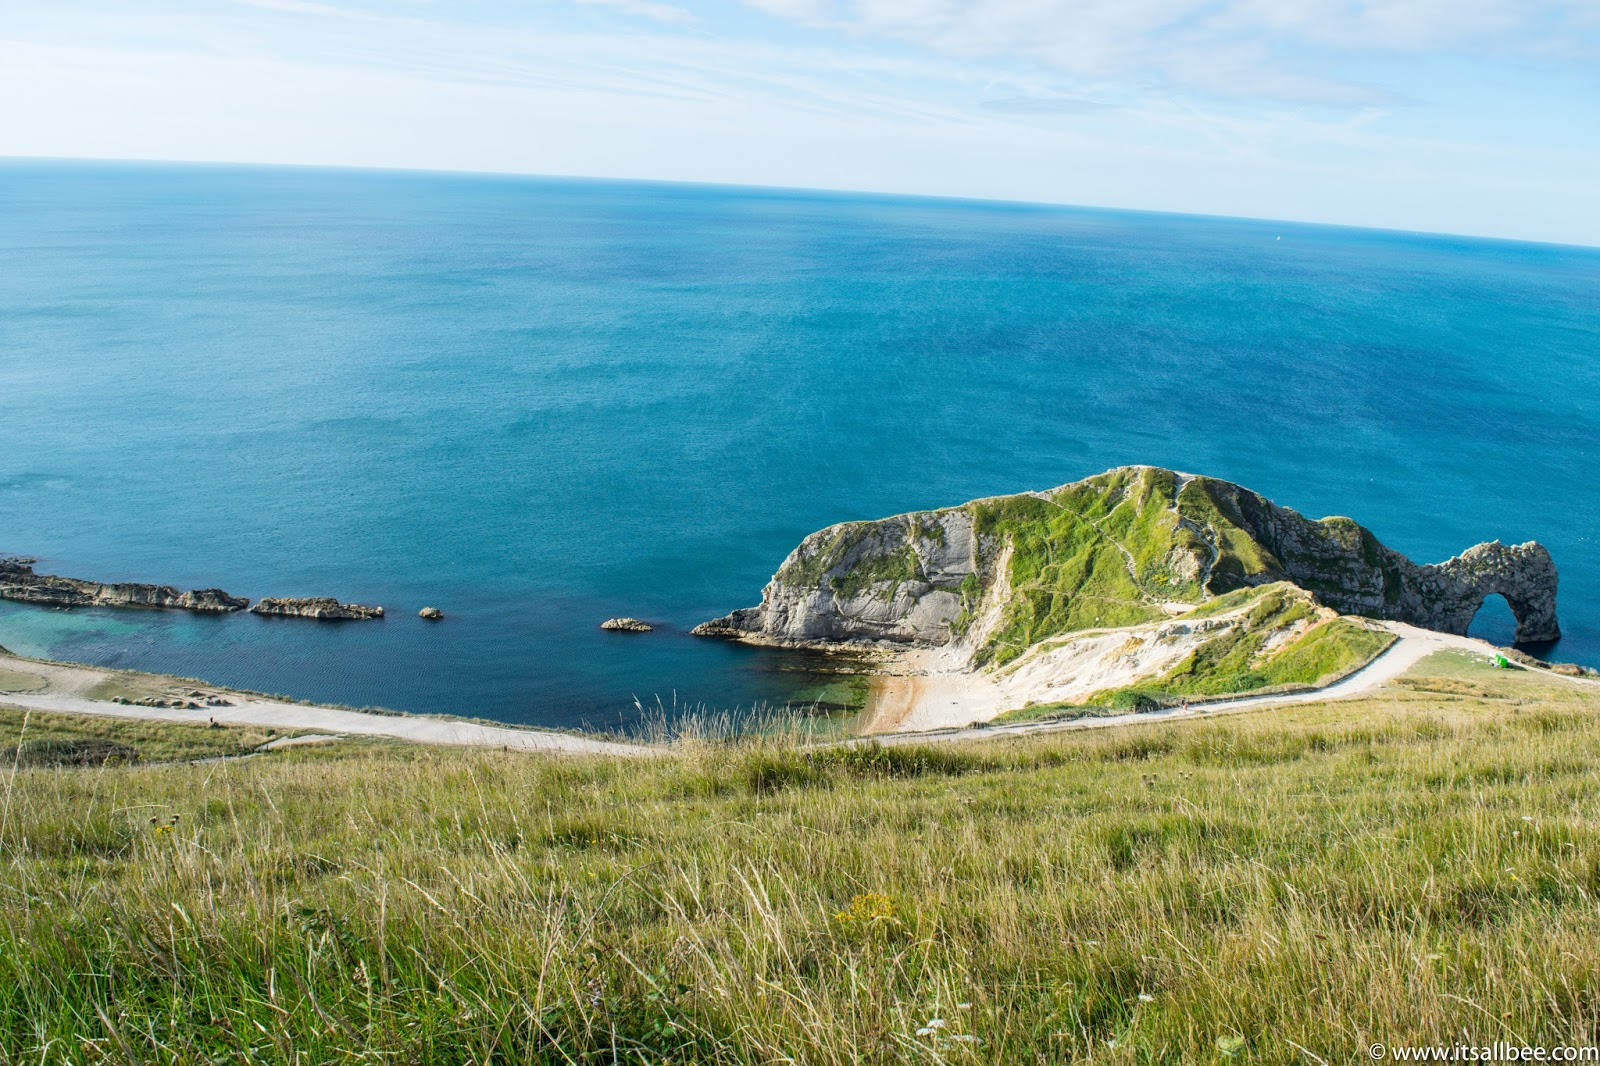 Durdle Door Camping - 5 Things To Do Durdle Door Jurassic Coast | Durdle Door postcode